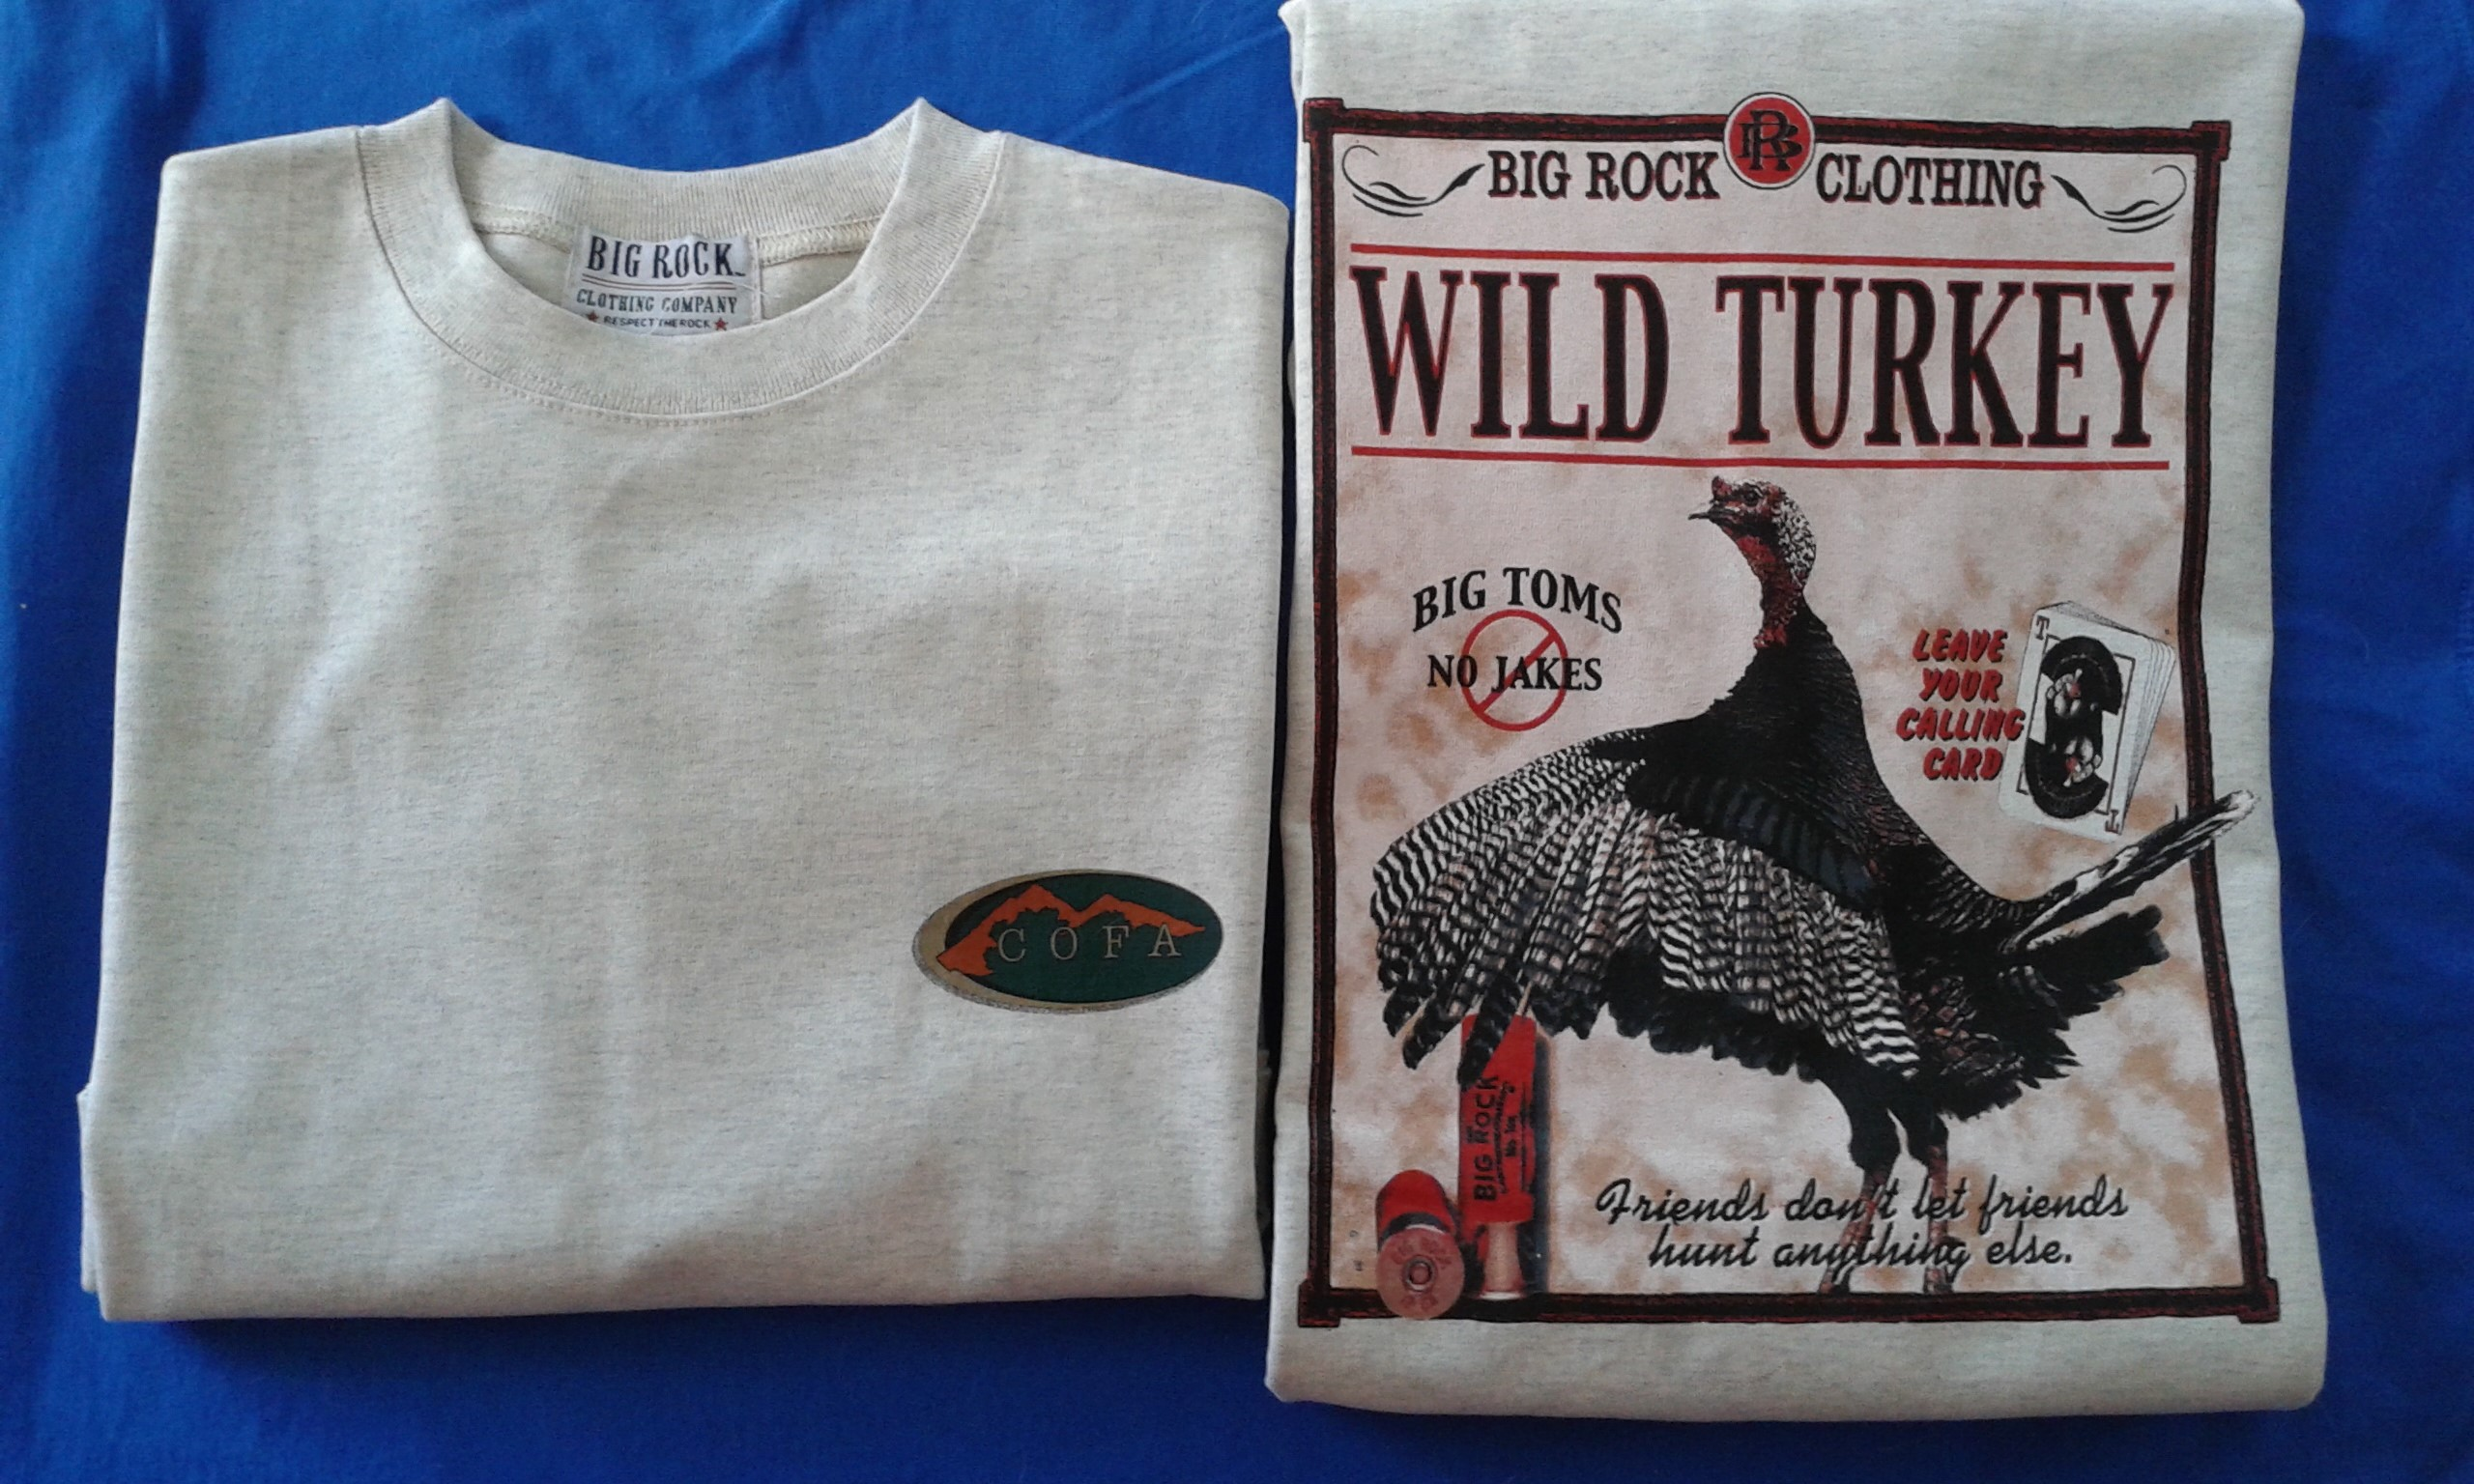 COFA Big Rock Wild Turkey T-Shirt